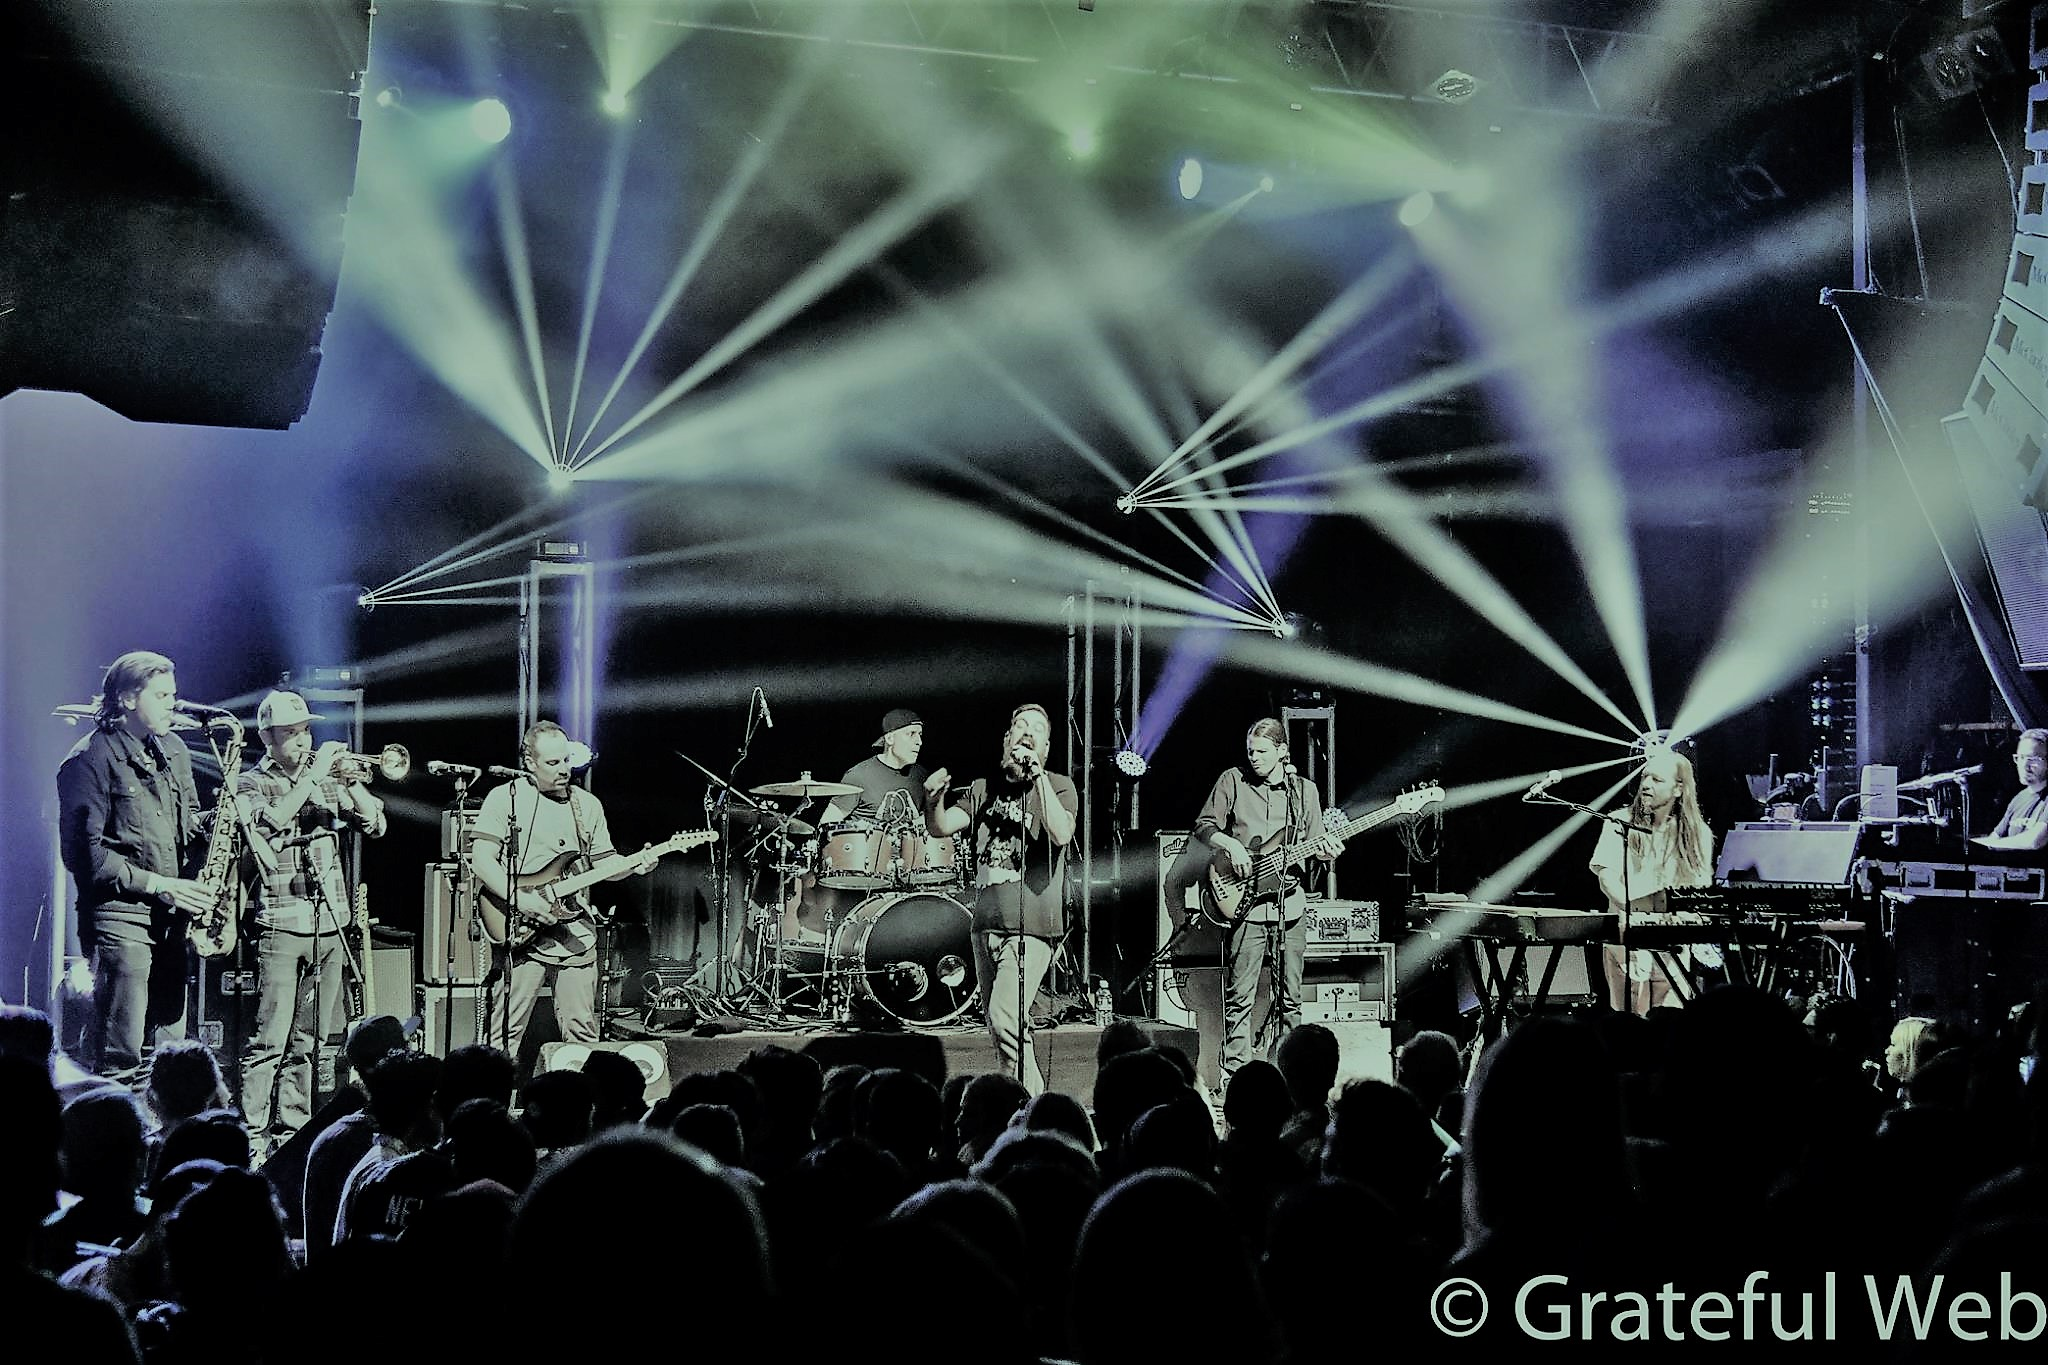 The Motet Funkin' the Fox Theatre's 25th